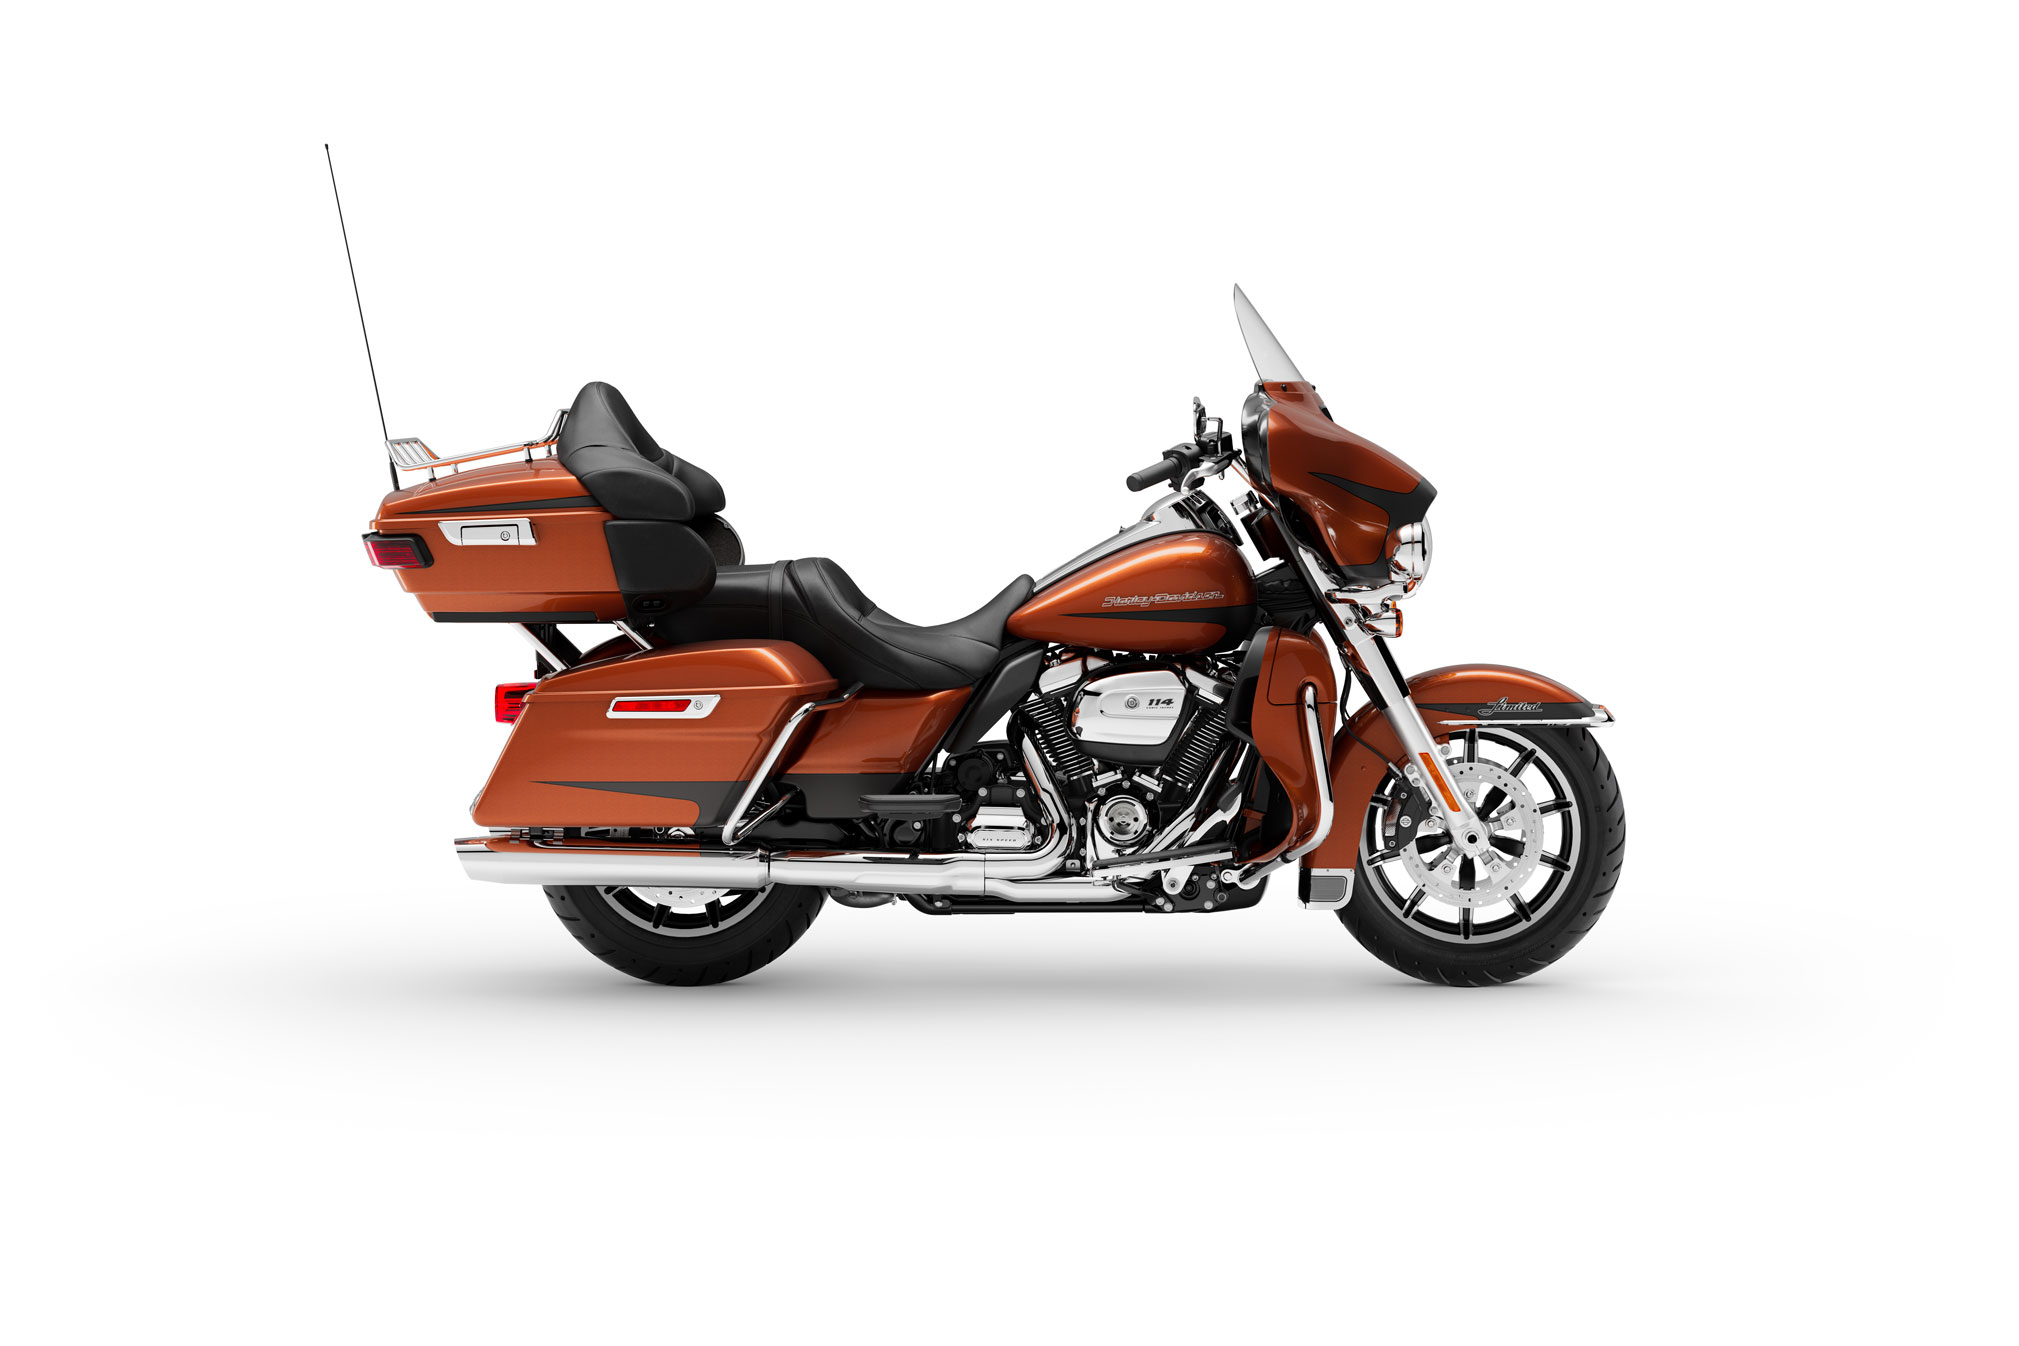 Harley Davidson Touring With 2019 Harley Davidson Ultra Limited Guide Total Motorcycle